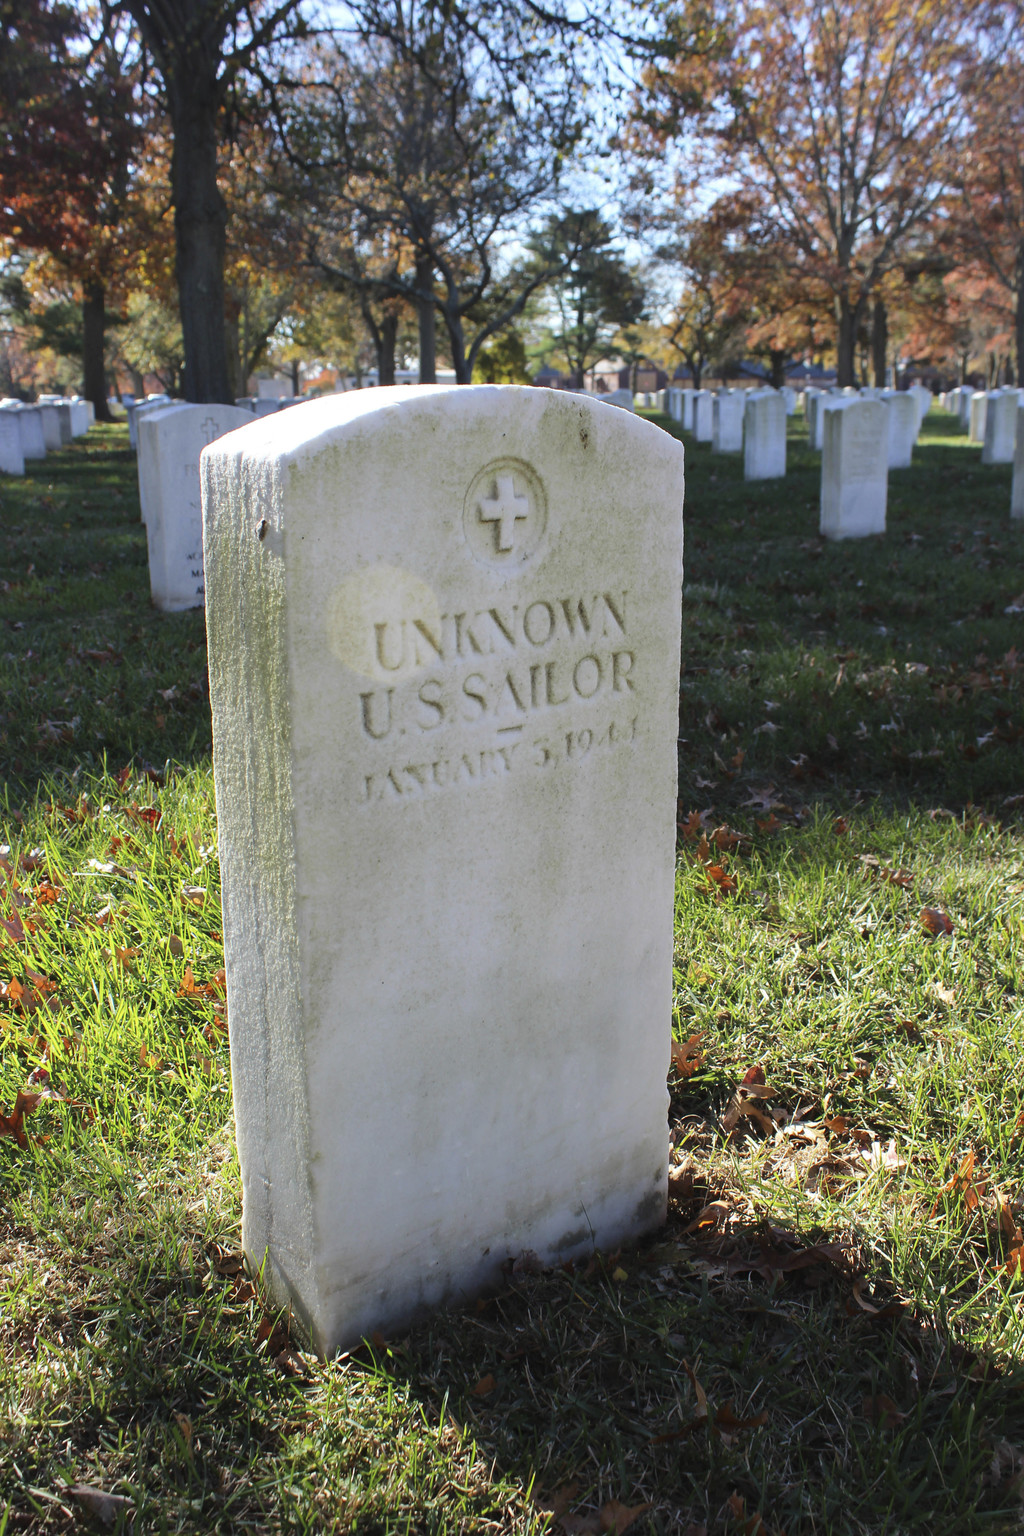 FILE- This Nov. 11, 2016, file photo shows a gravestone with the inscription UNKNOWN U.S. SAILOR at Long Island National Cemetery in Fa...